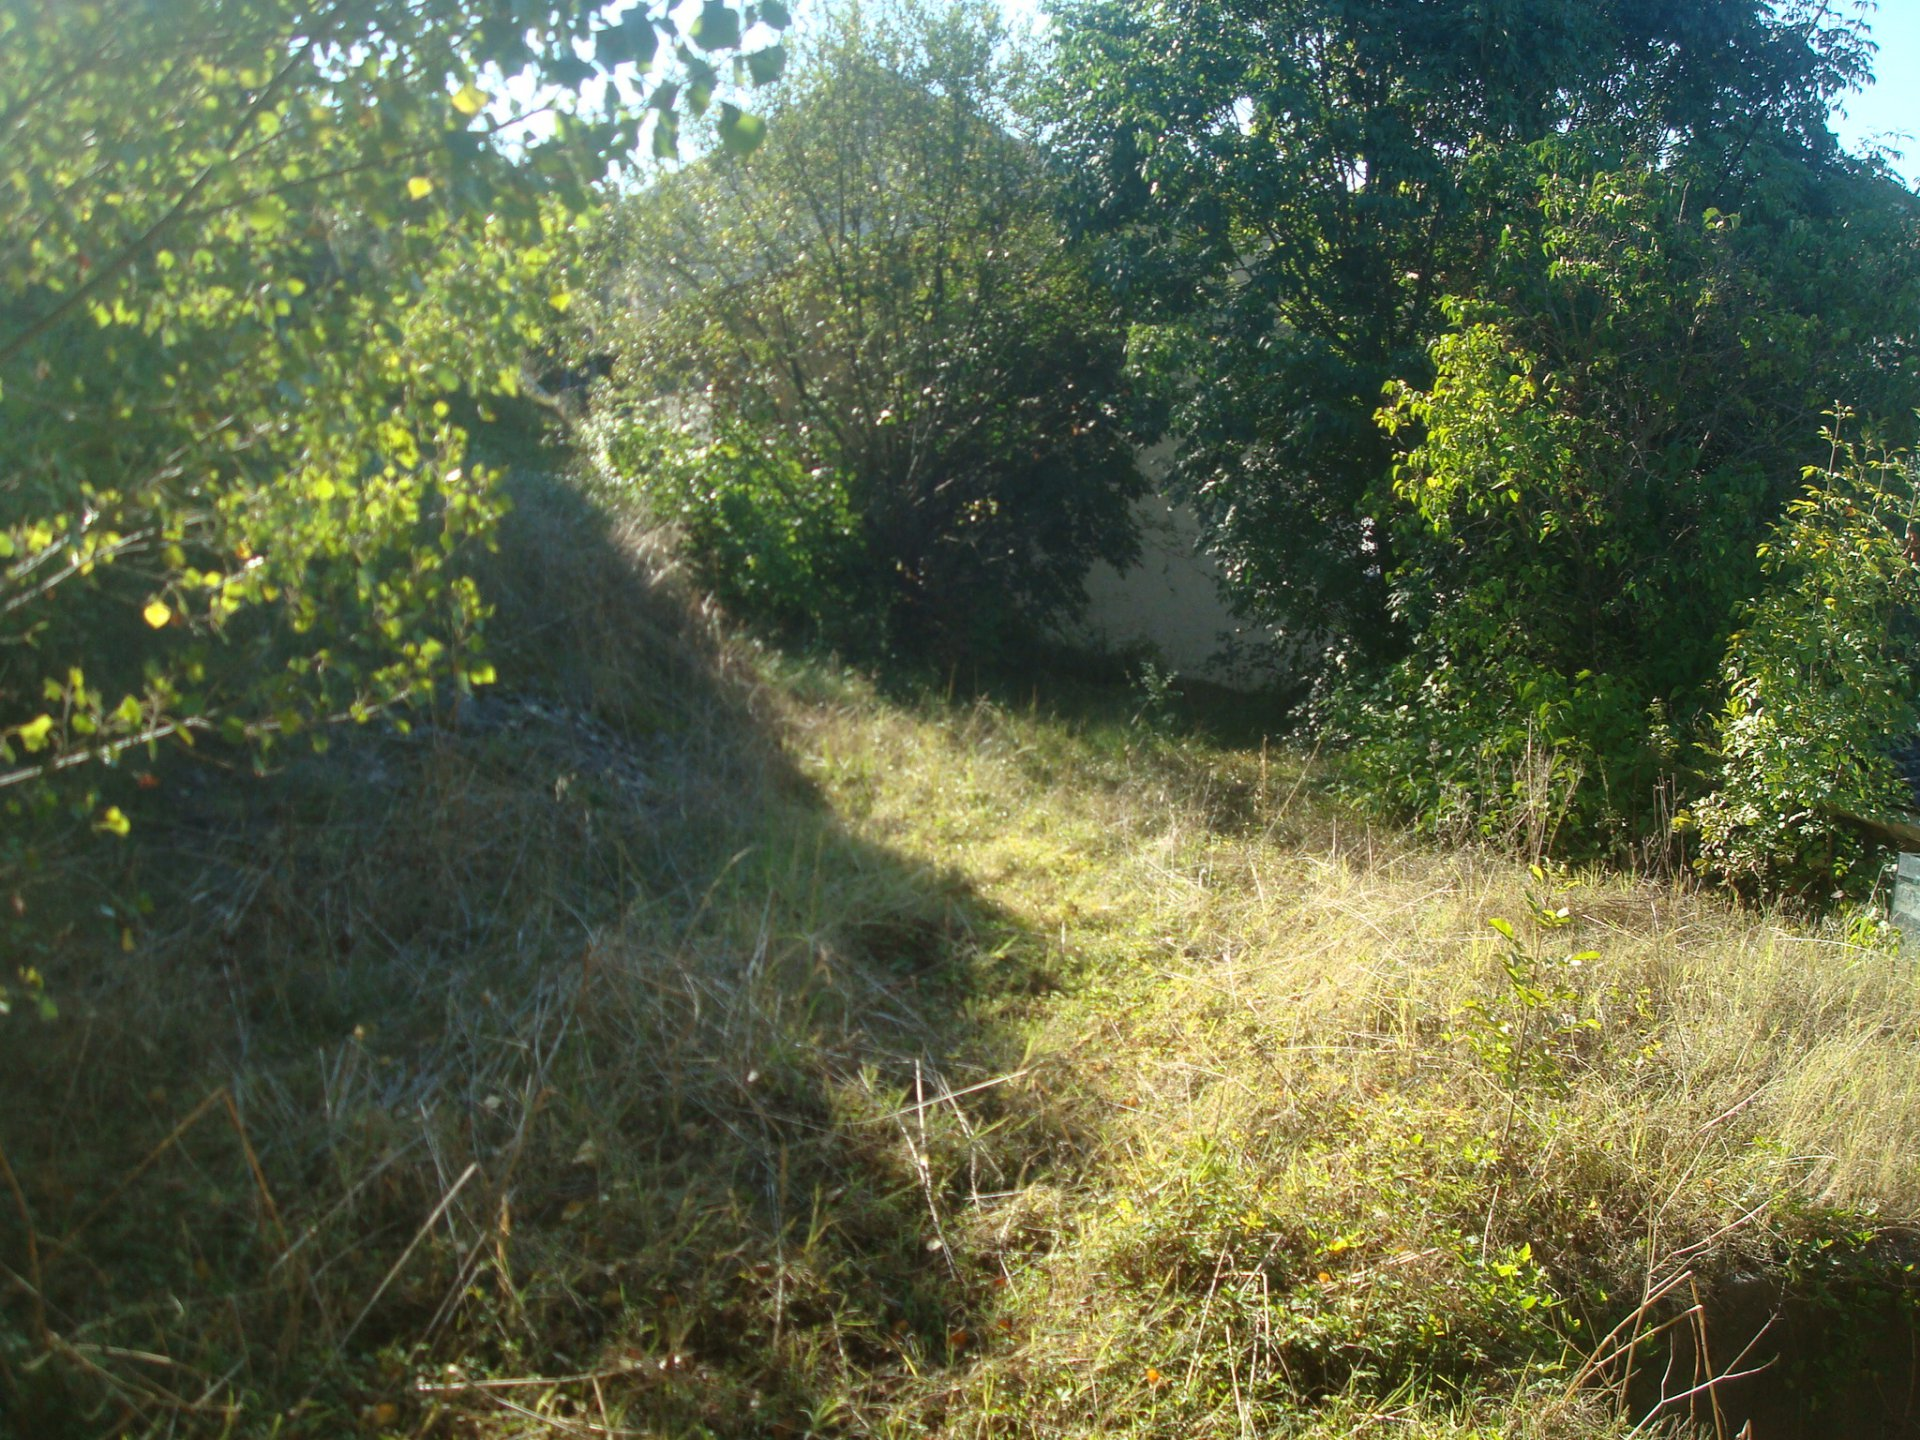 592 m² of land in the heart of Aurignac